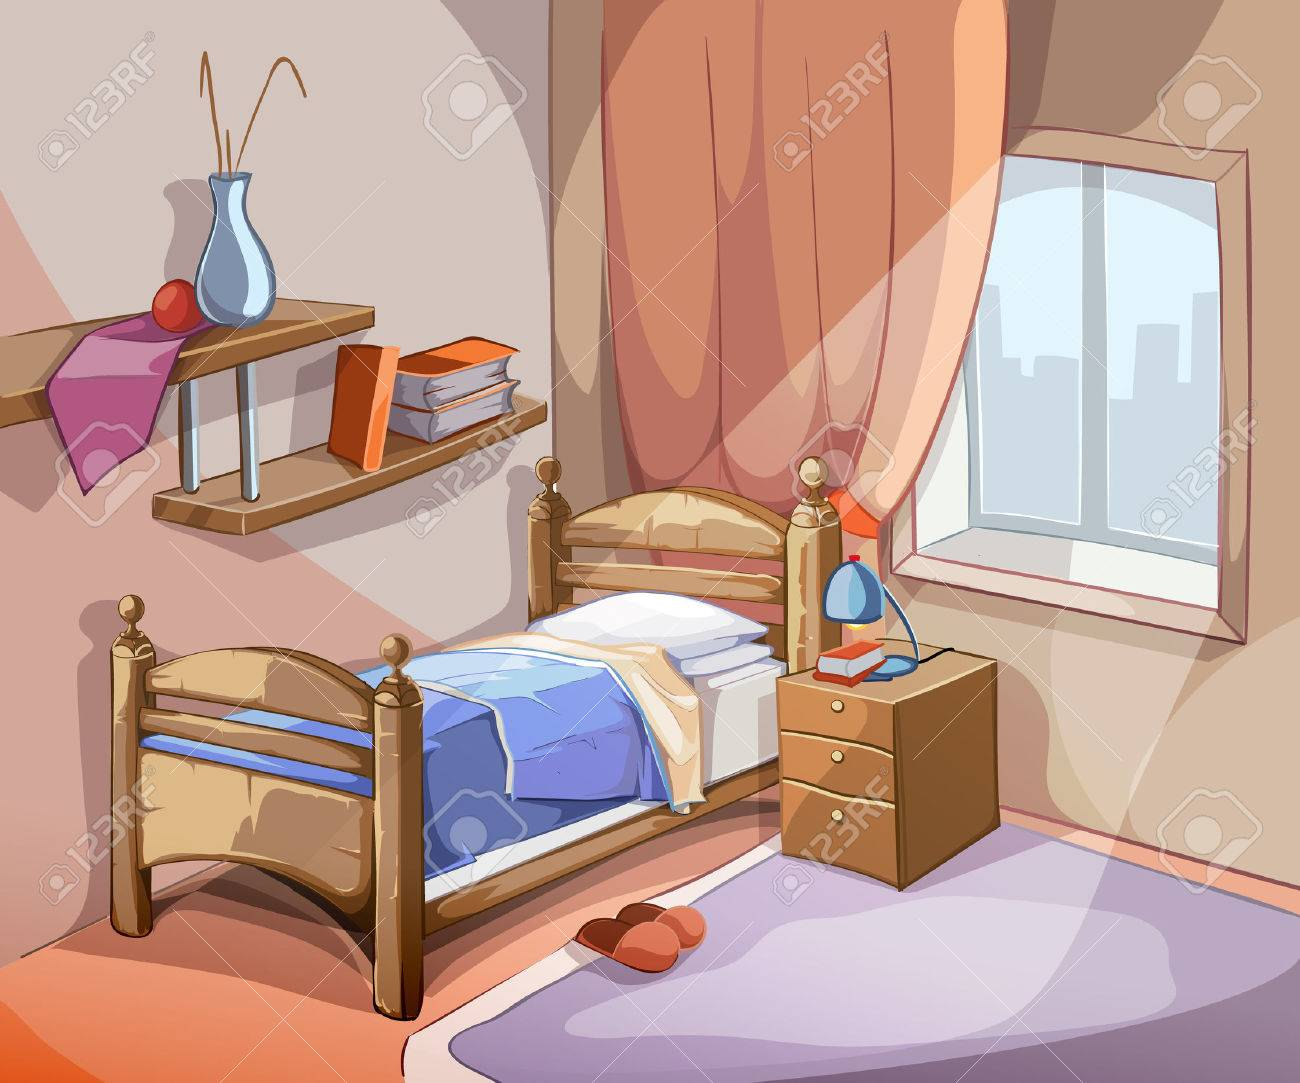 apartment style furniture. Bedroom Interior In Cartoon Style. Furniture Design Bed Indoor Apartment. Vector Illustration Stockfoto - Apartment Style